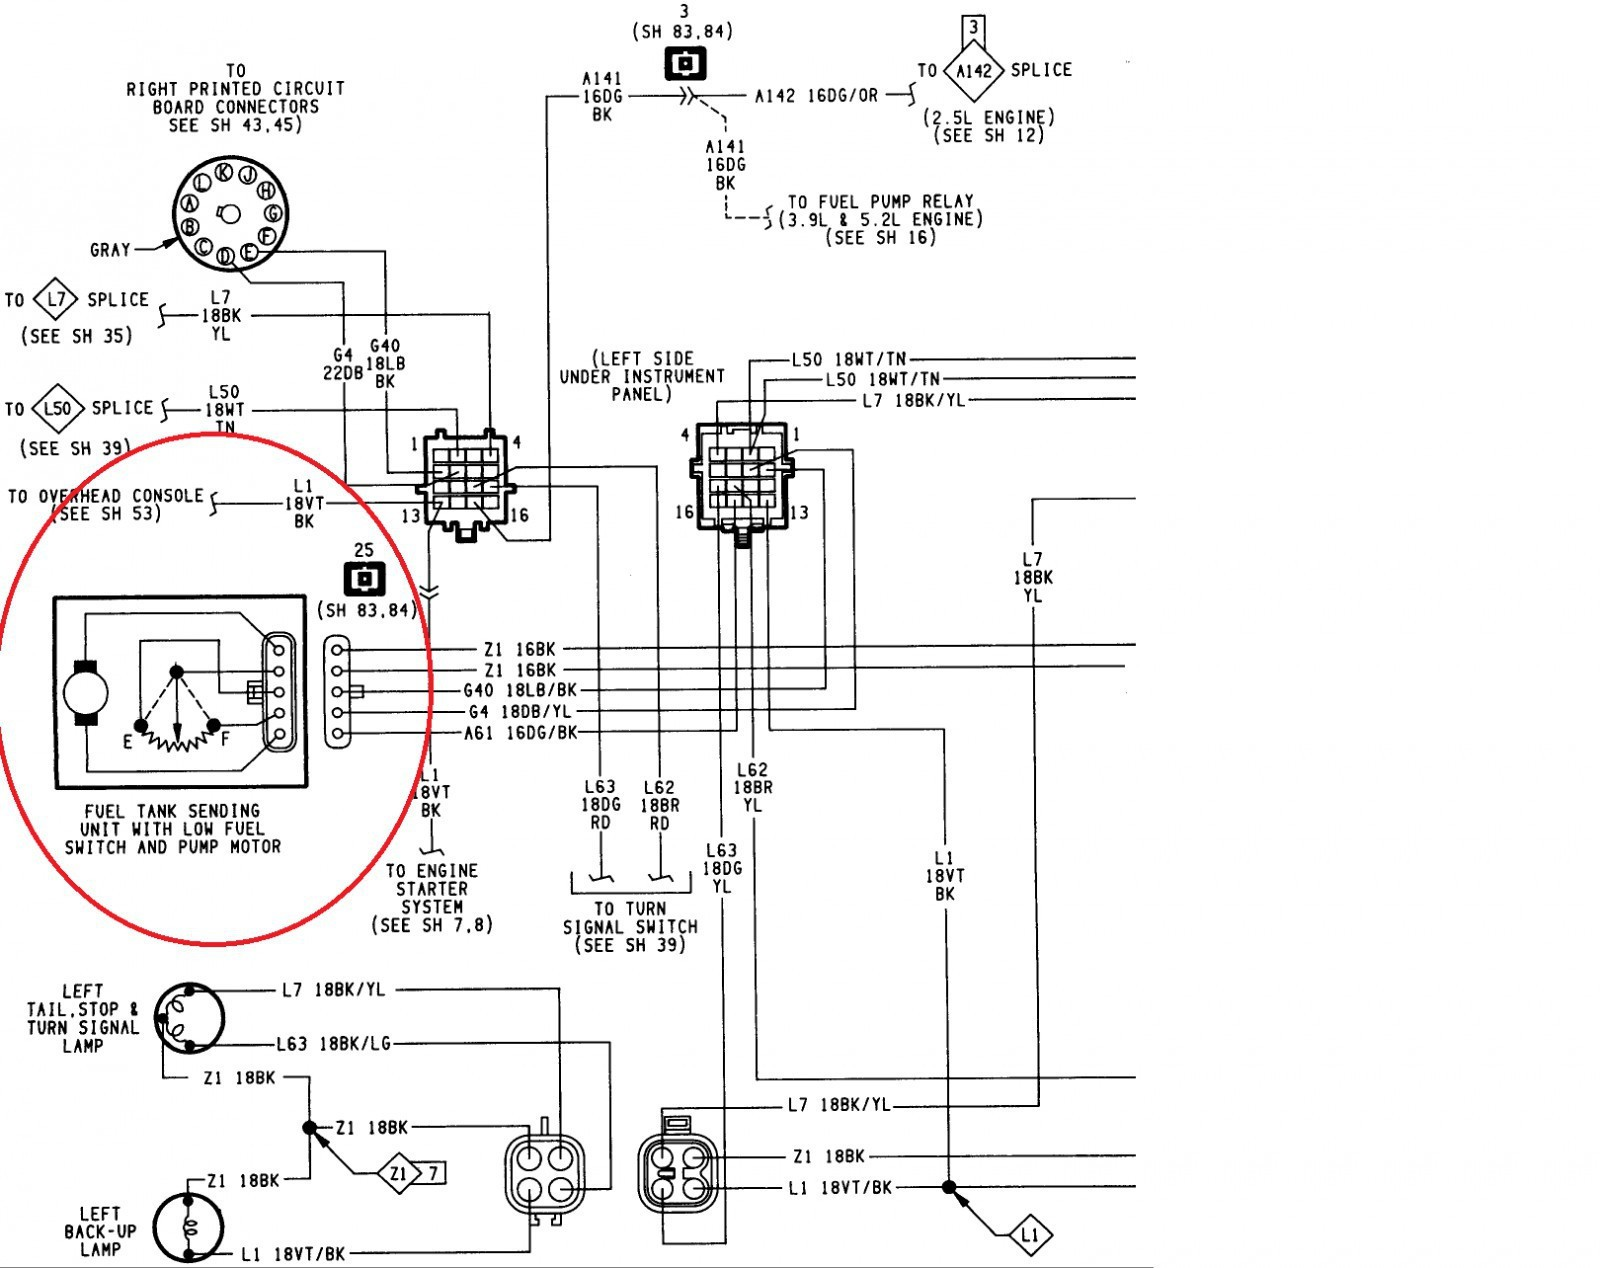 hight resolution of vdo gauge a2c53436982 wiring diagram wiring diagrams long vdo air temperature wiring diagram